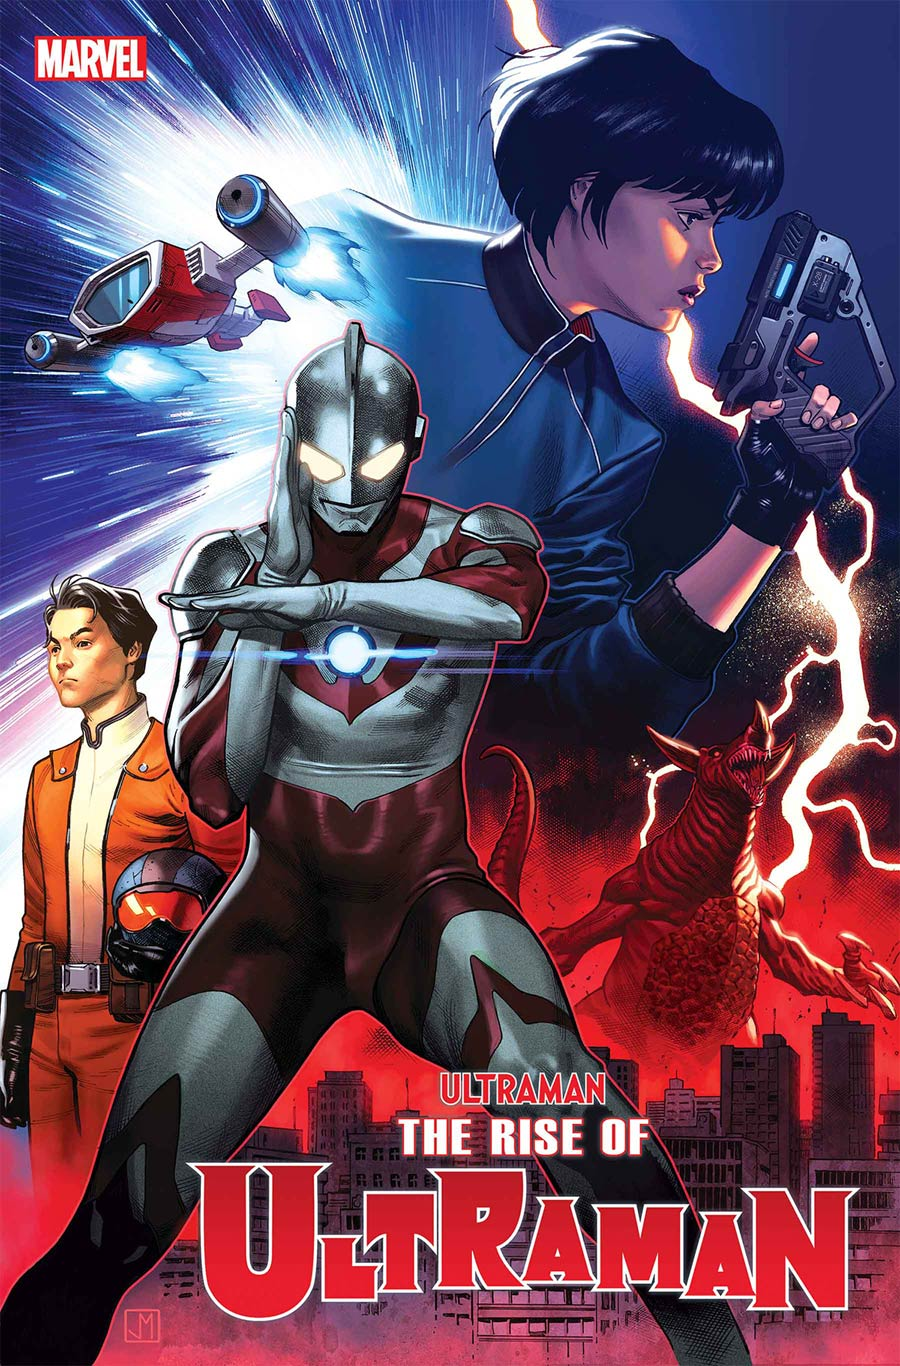 The Rise of Ultraman